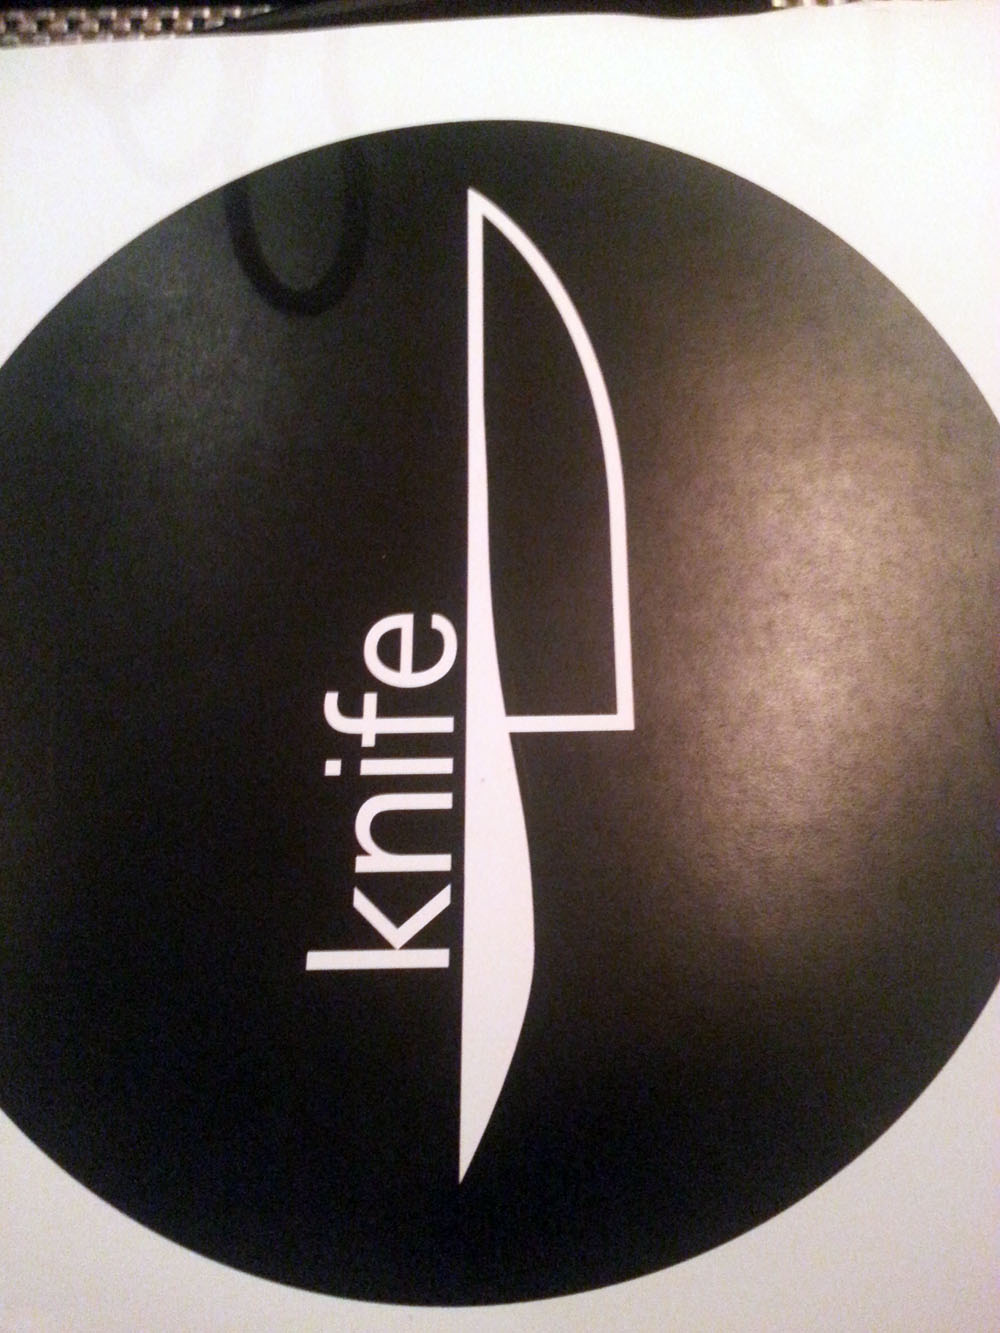 John Tesar's Knife via dallasfoodnerd.com